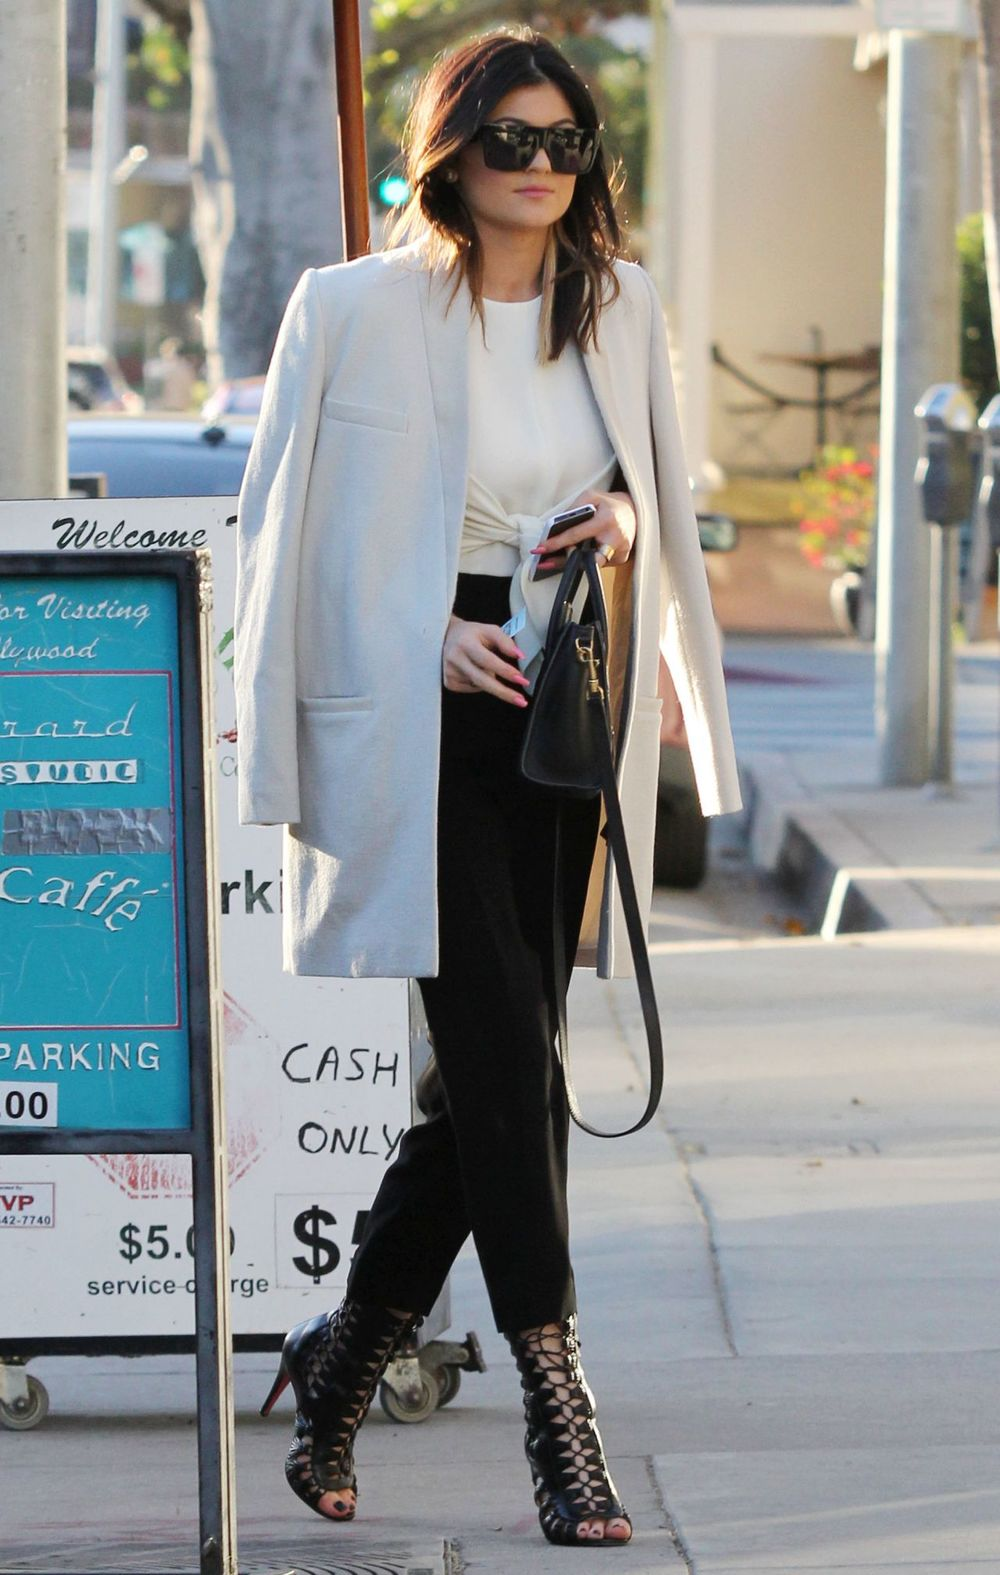 kylie-jenner-street-style-leaving-urth-cafe-in-west-hollywood-january-2014_3.jpg